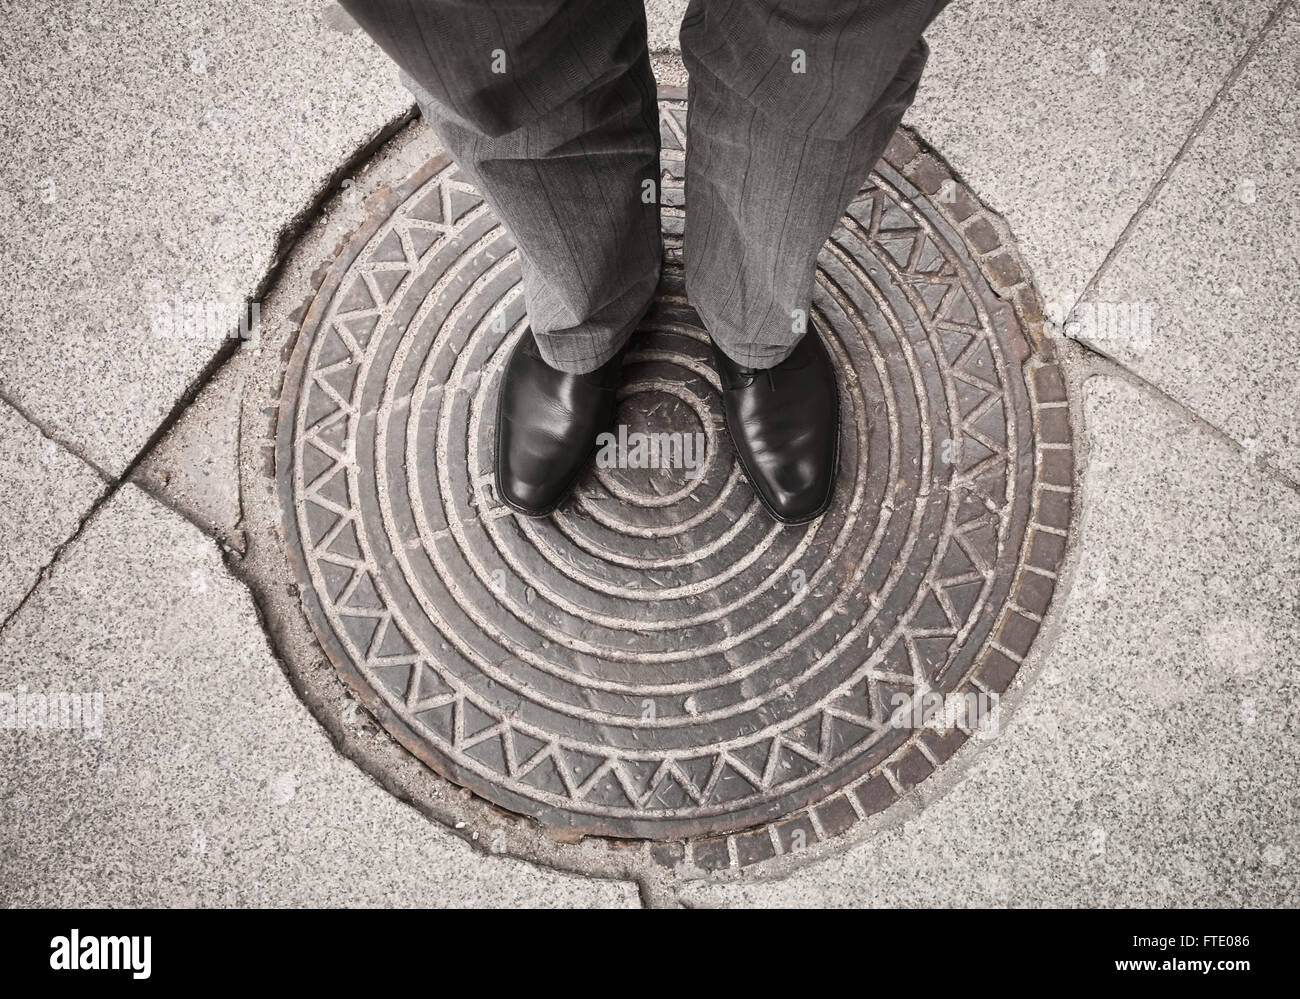 Urbanite man in black new shining leather shoes standing on rusty sewer manhole - Stock Image